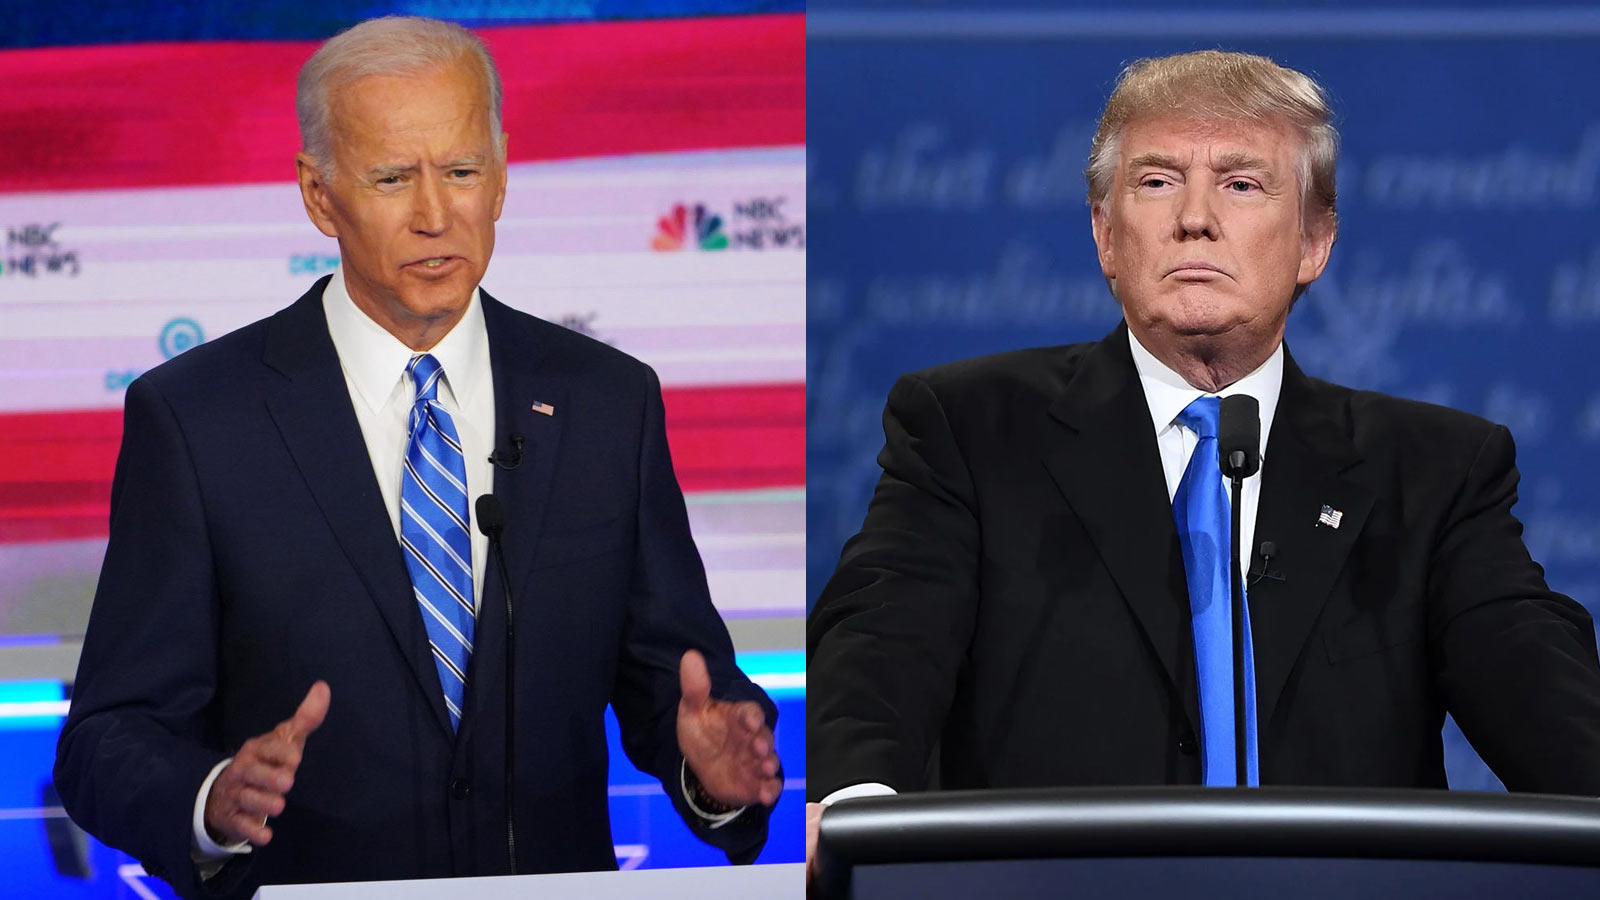 When Will Joe Biden and Donald Trump Debate in 2020?